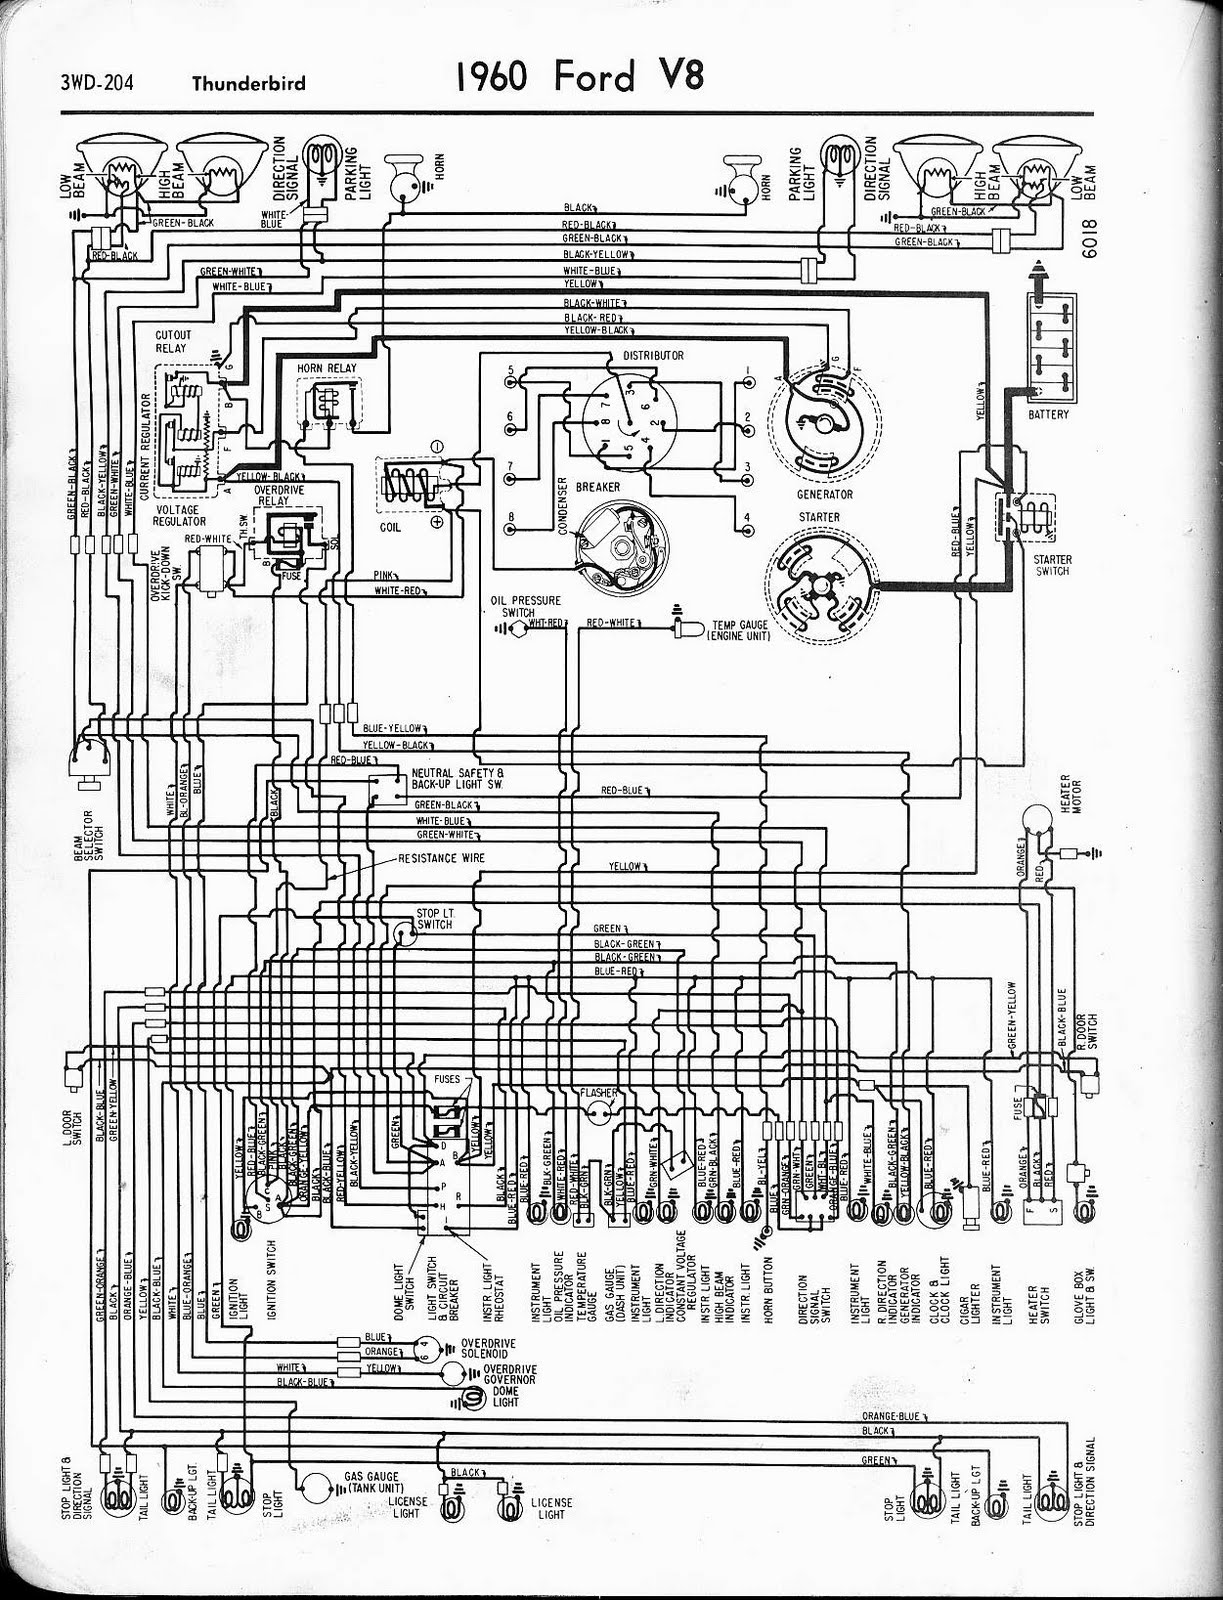 medium resolution of 97 thunderbird wiring diagram wiring diagrams konsult 1997 ford thunderbird wiring diagram